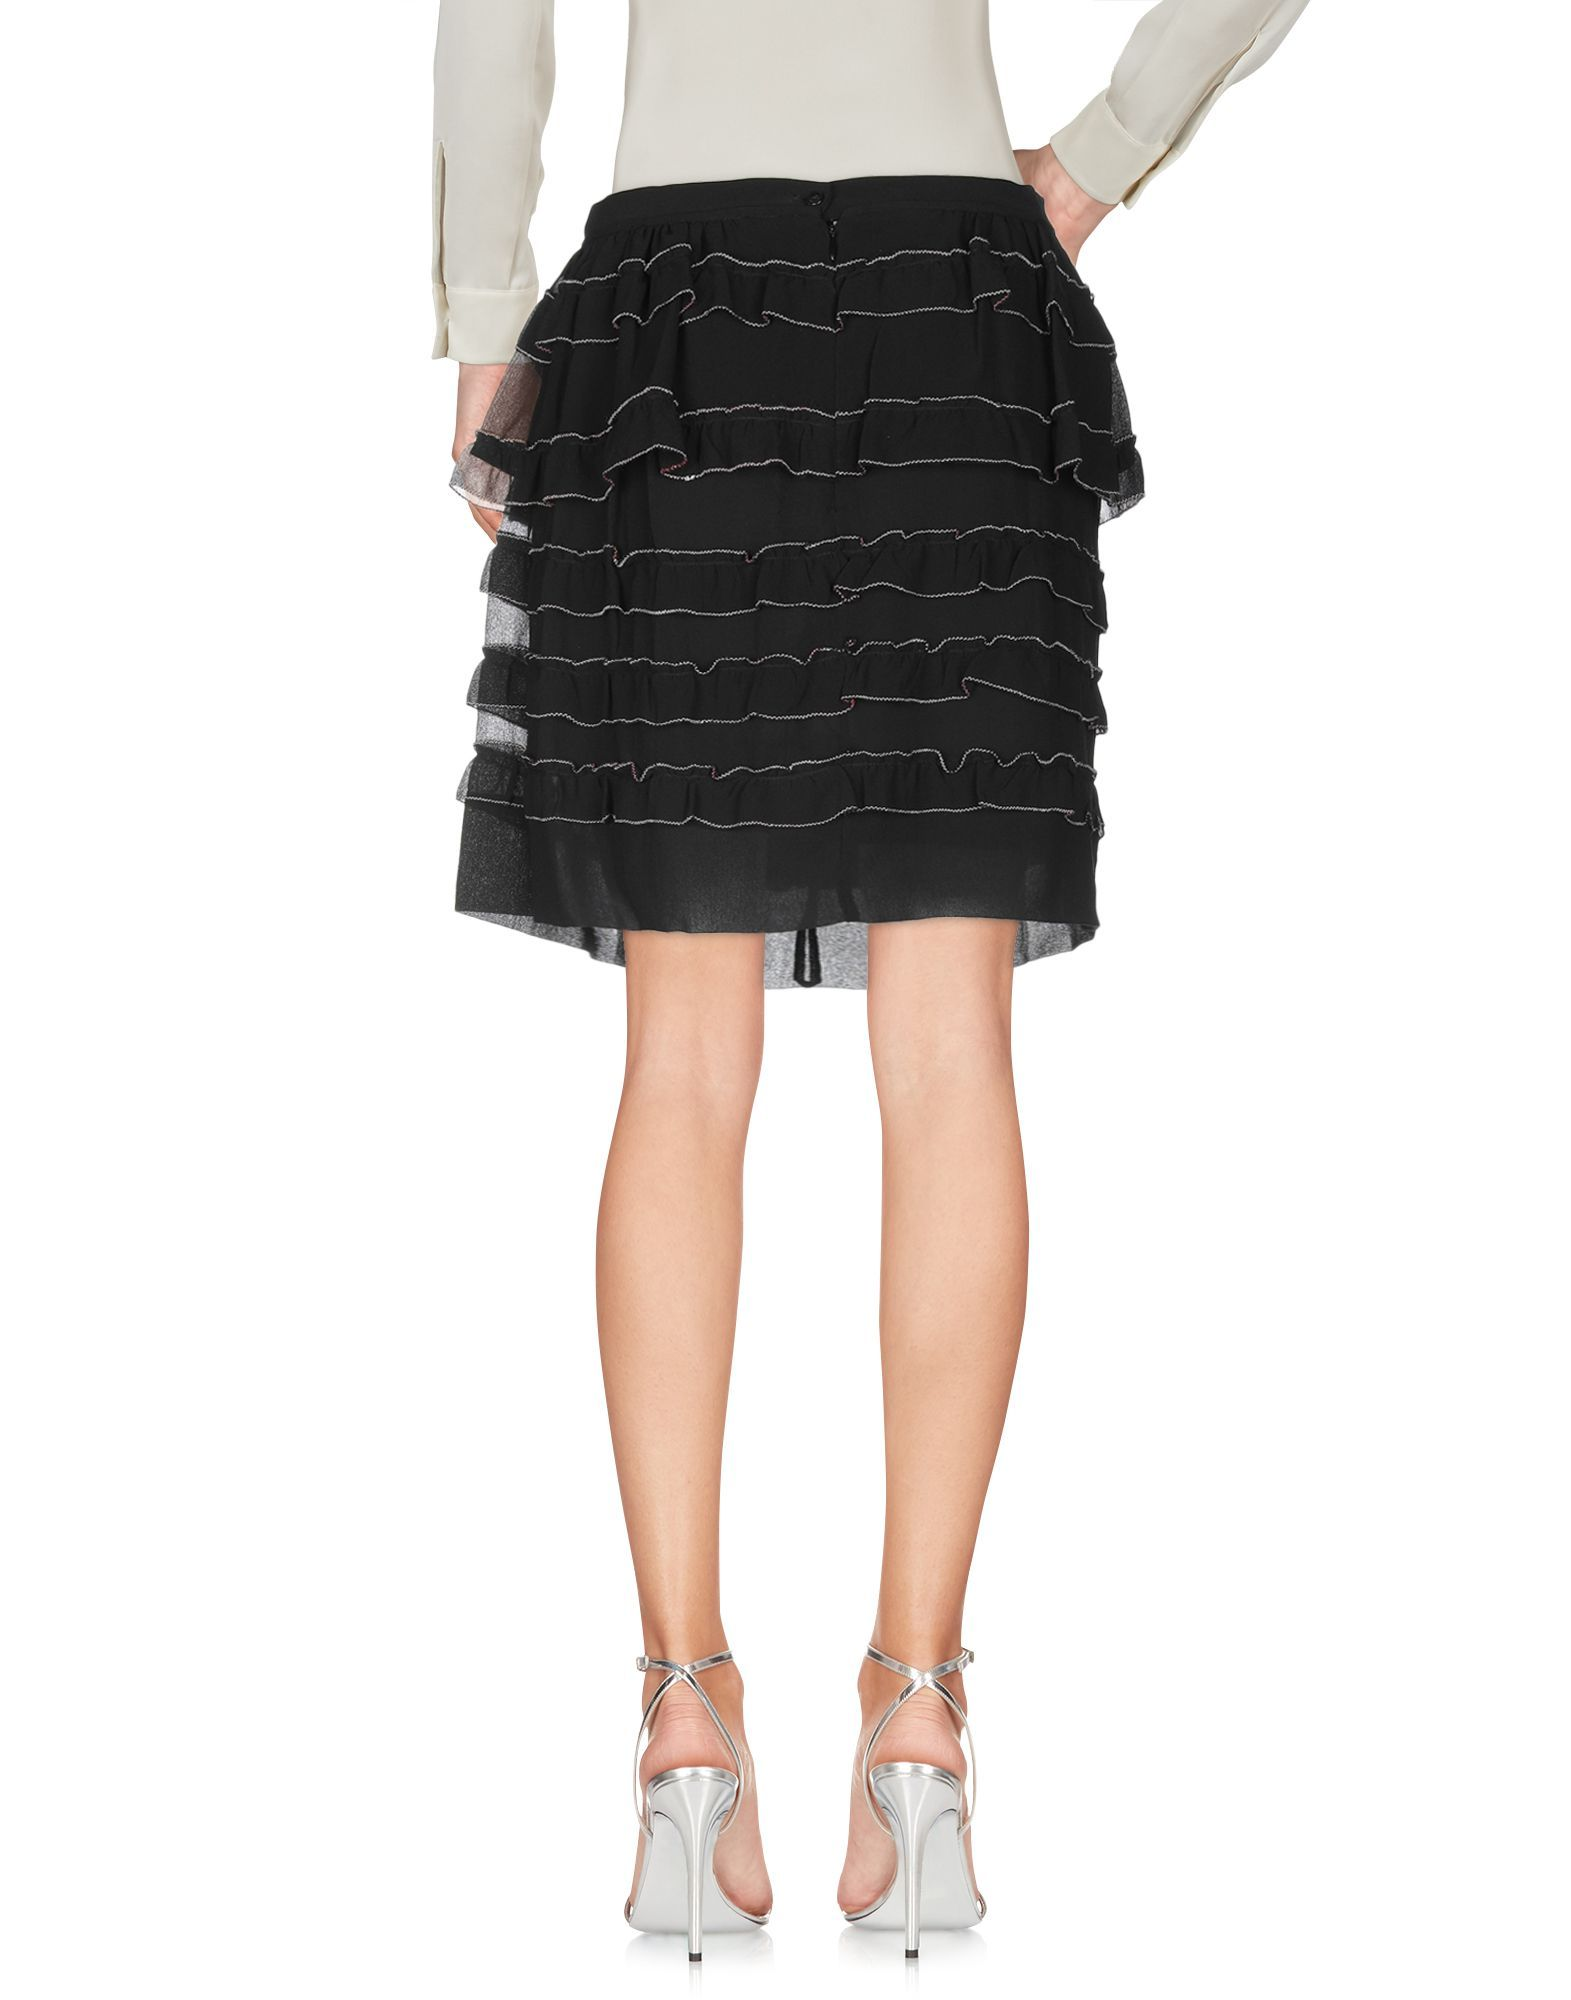 Isabel Marant Black Silk Ruffle Skirt